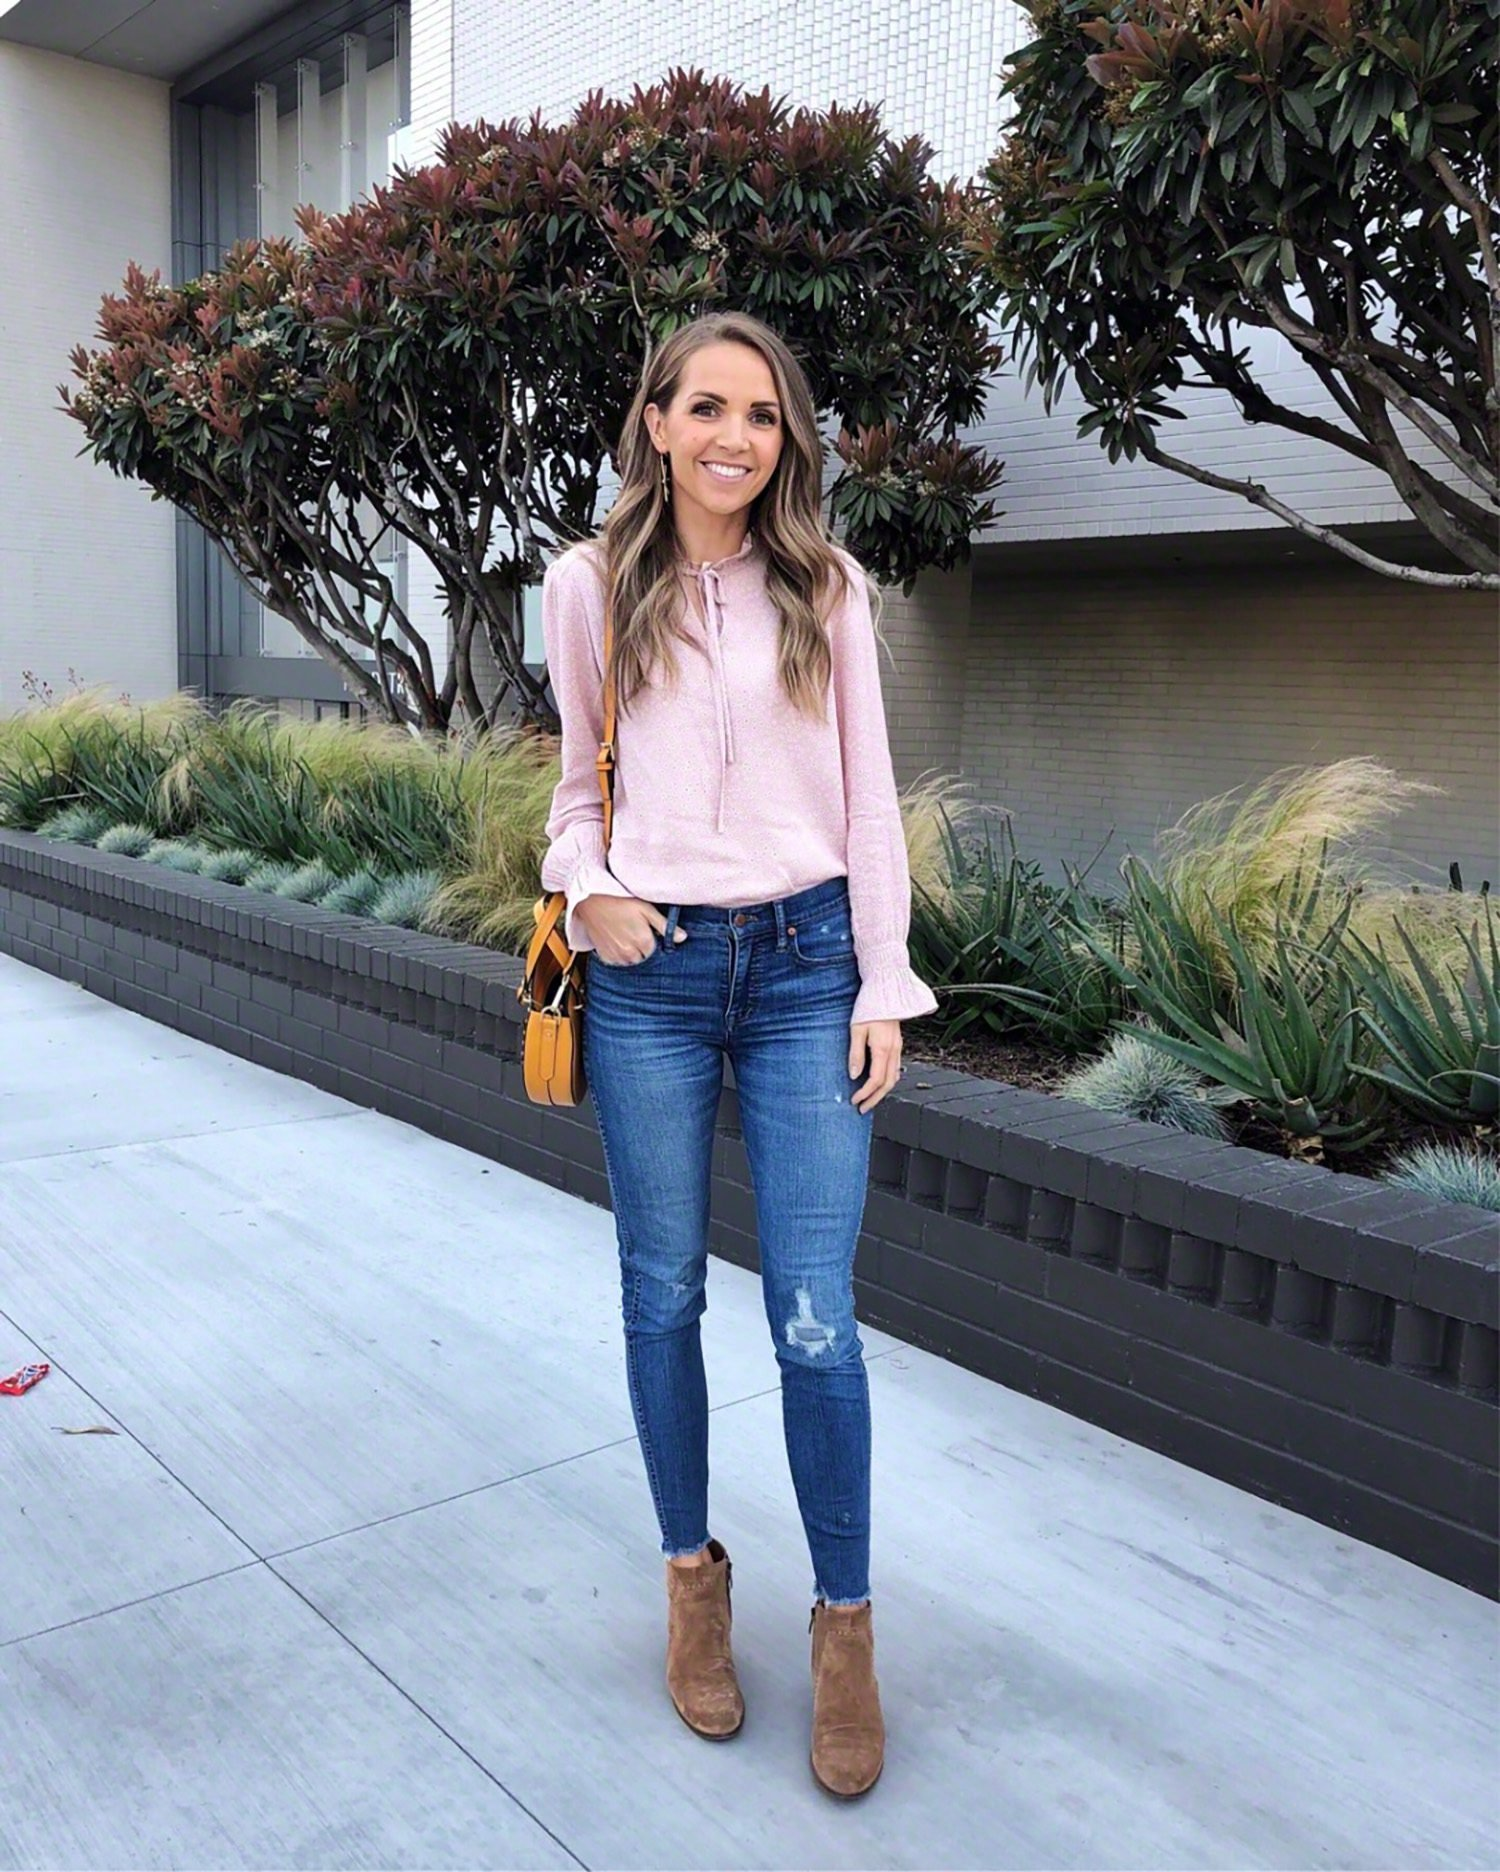 pink sweatshirt and jeans